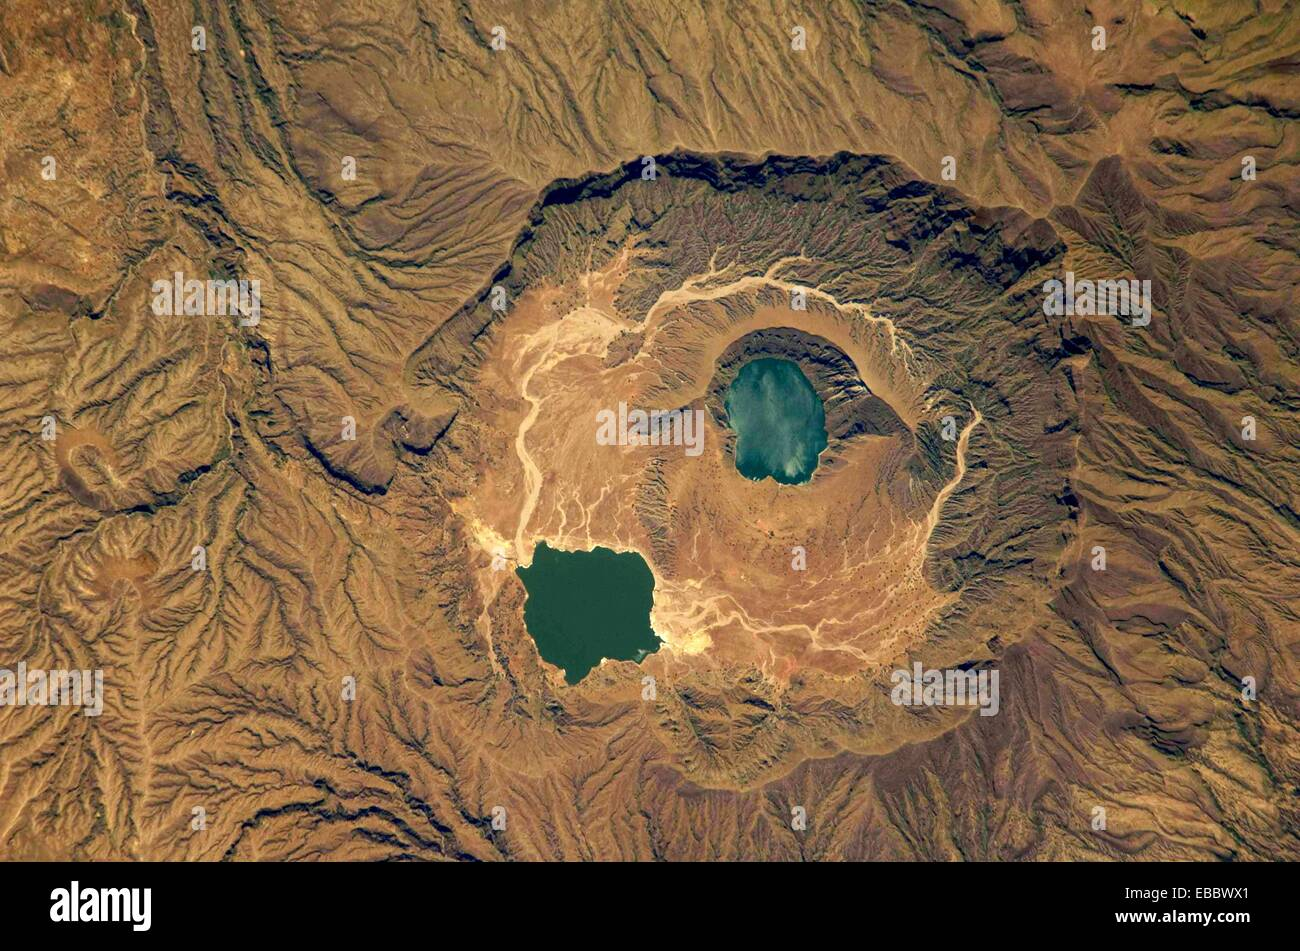 Deriba Caldera, a cauldron-like volcanic feature usually formed by the collapse of land following a volcanic eruption, - Stock Image